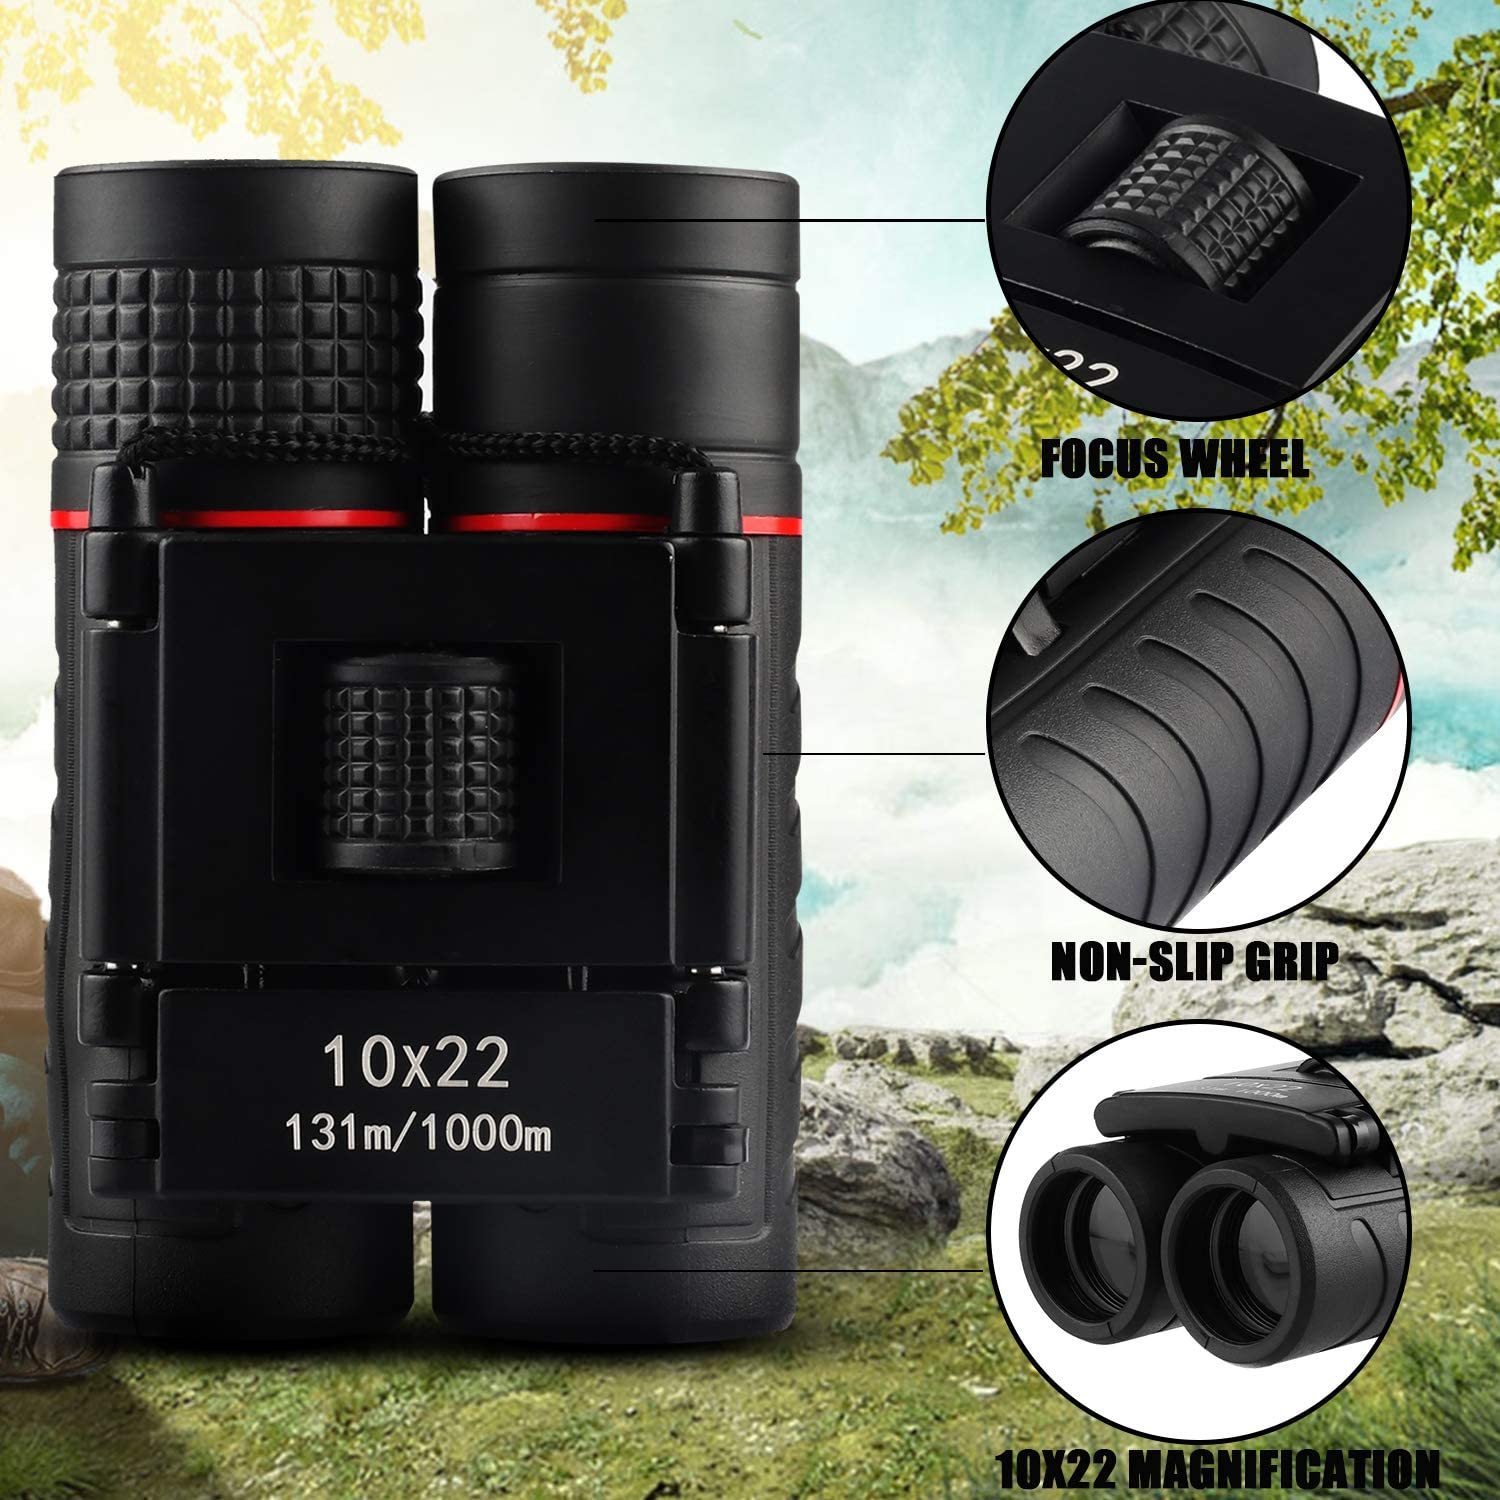 Travel Red Binoculars for Kids Adults,10x22 High-Resolution Real Optics Mini Compact Binocular Shockproof Folding Telescope for Outdoor Exploration Camping /& Best Gifts for Boys Girls